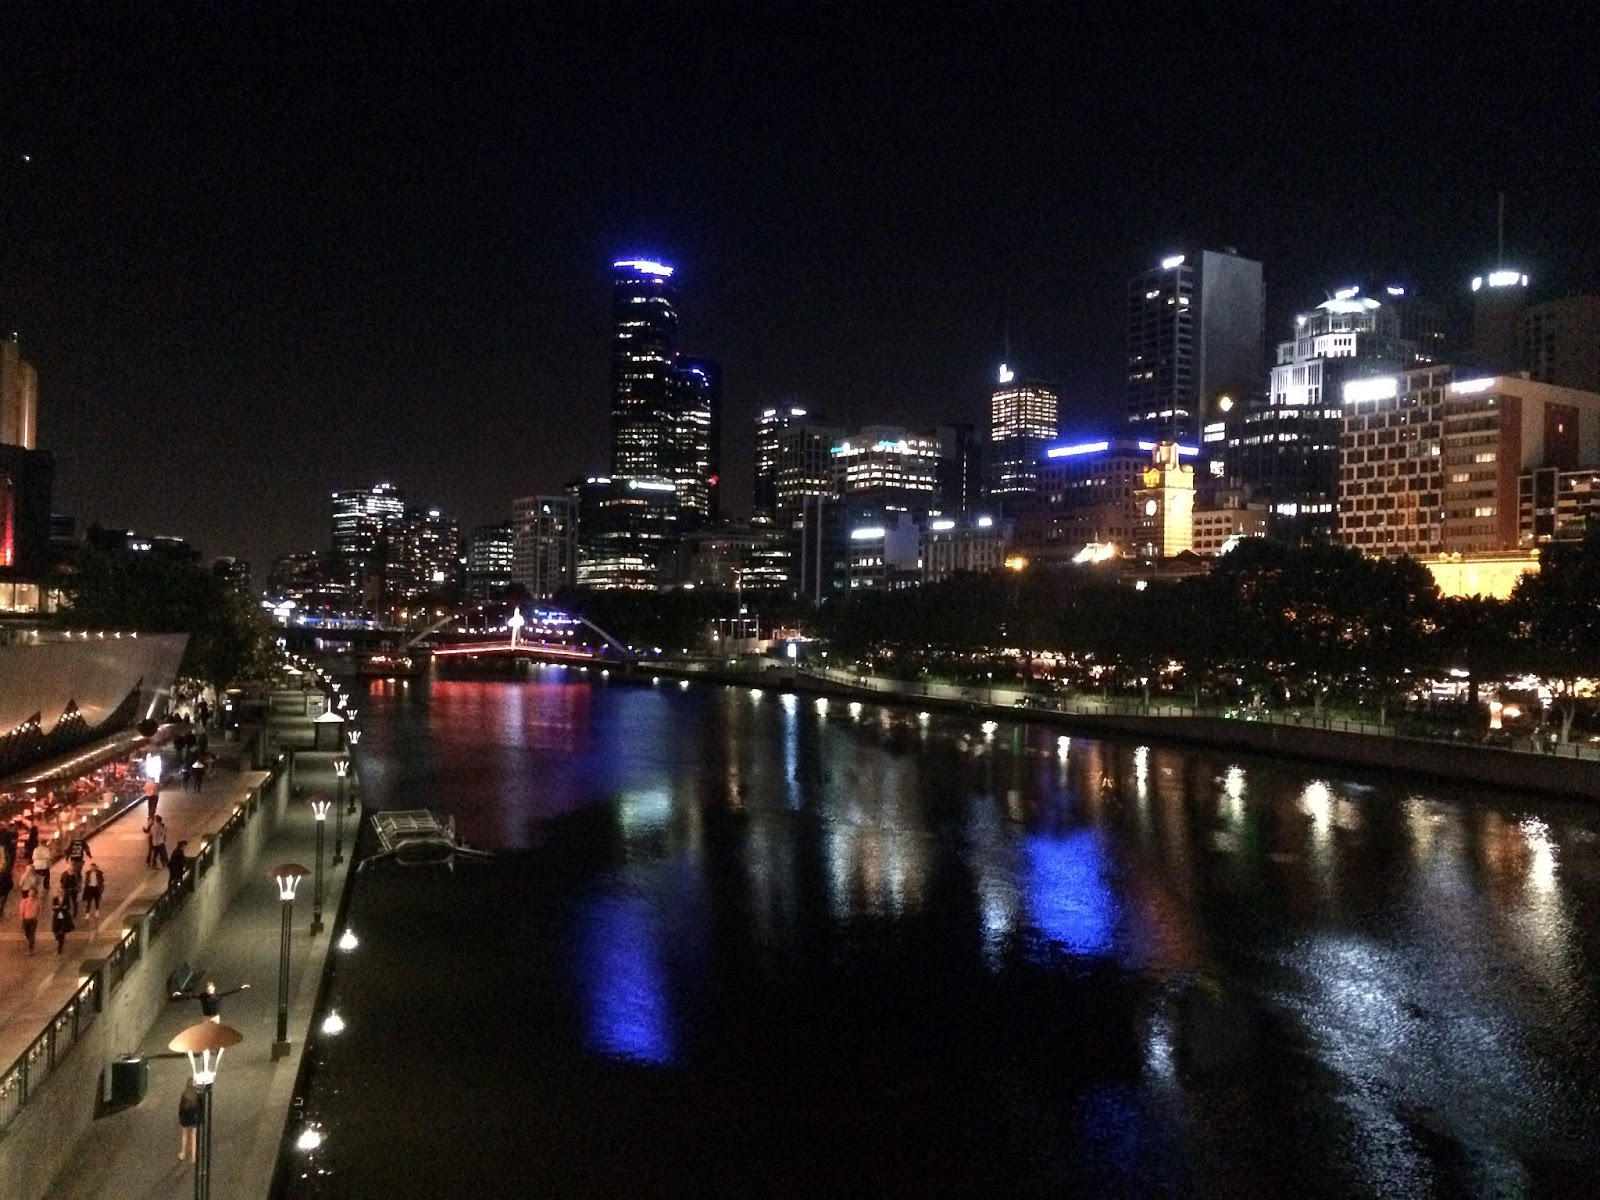 Melbourne Yarra River by Night